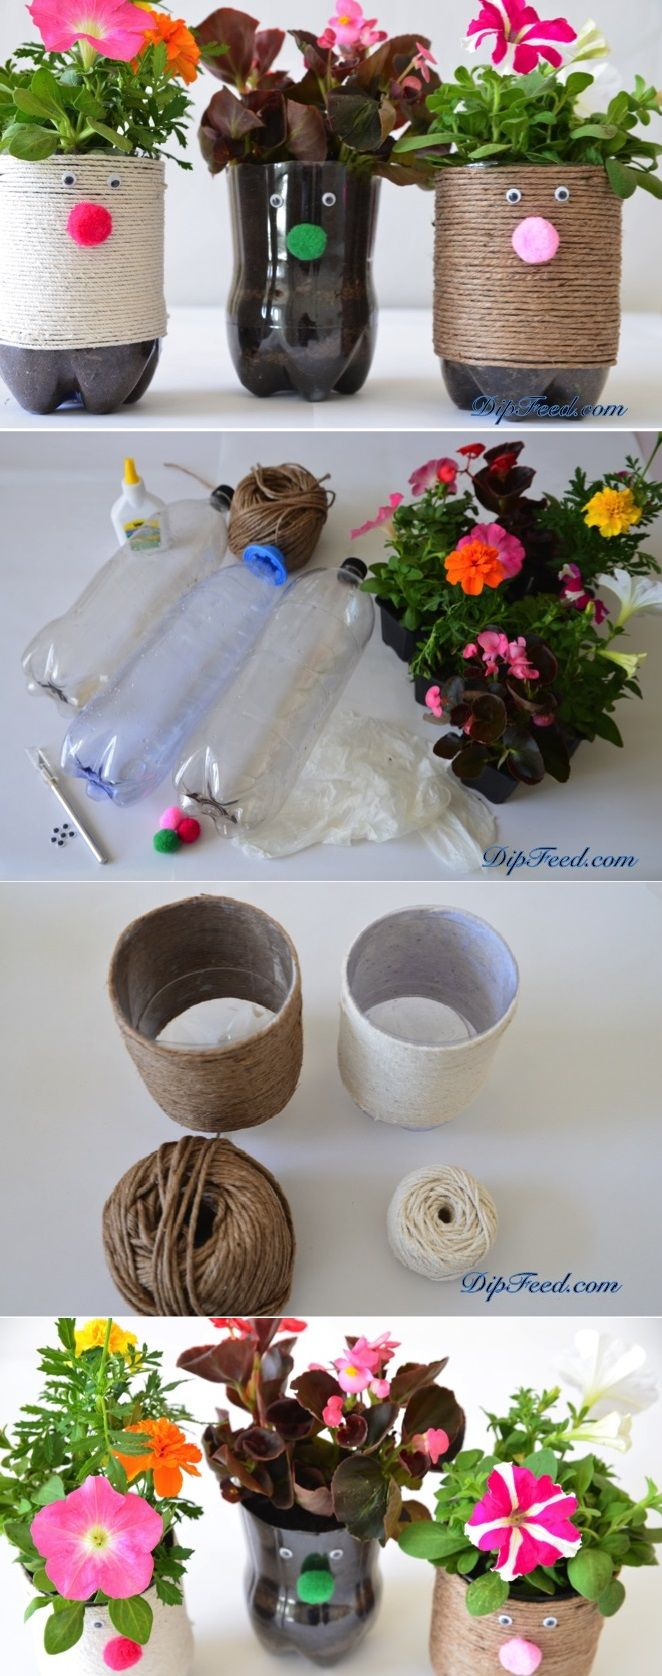 208 best reduce reuse recycle images on pinterest for Reduce reuse recycle crafts